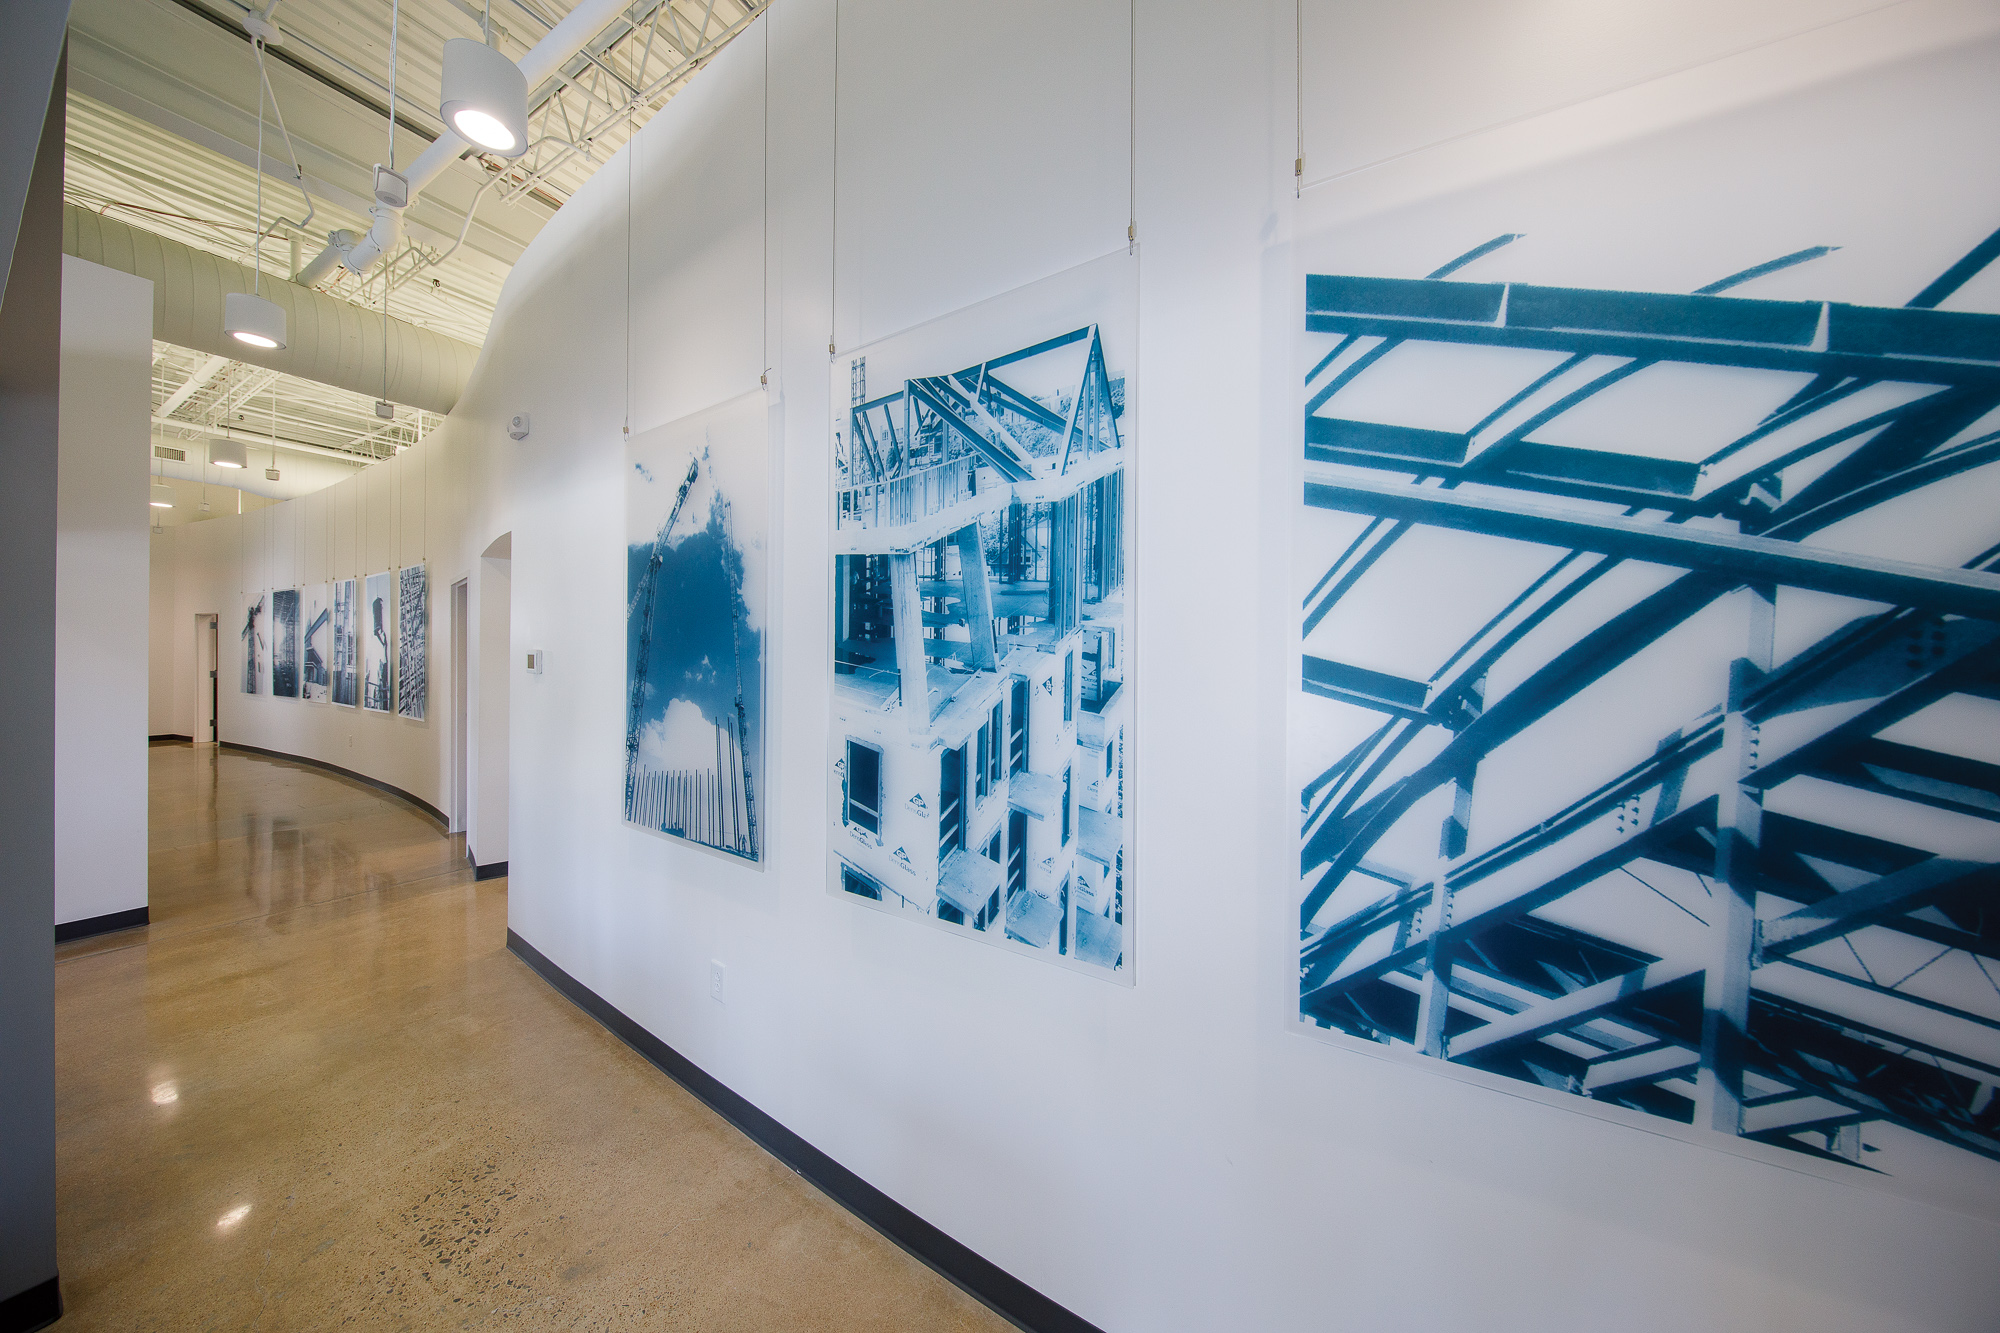 Large format project graphics printed on acrylic and suspended from overhead framework